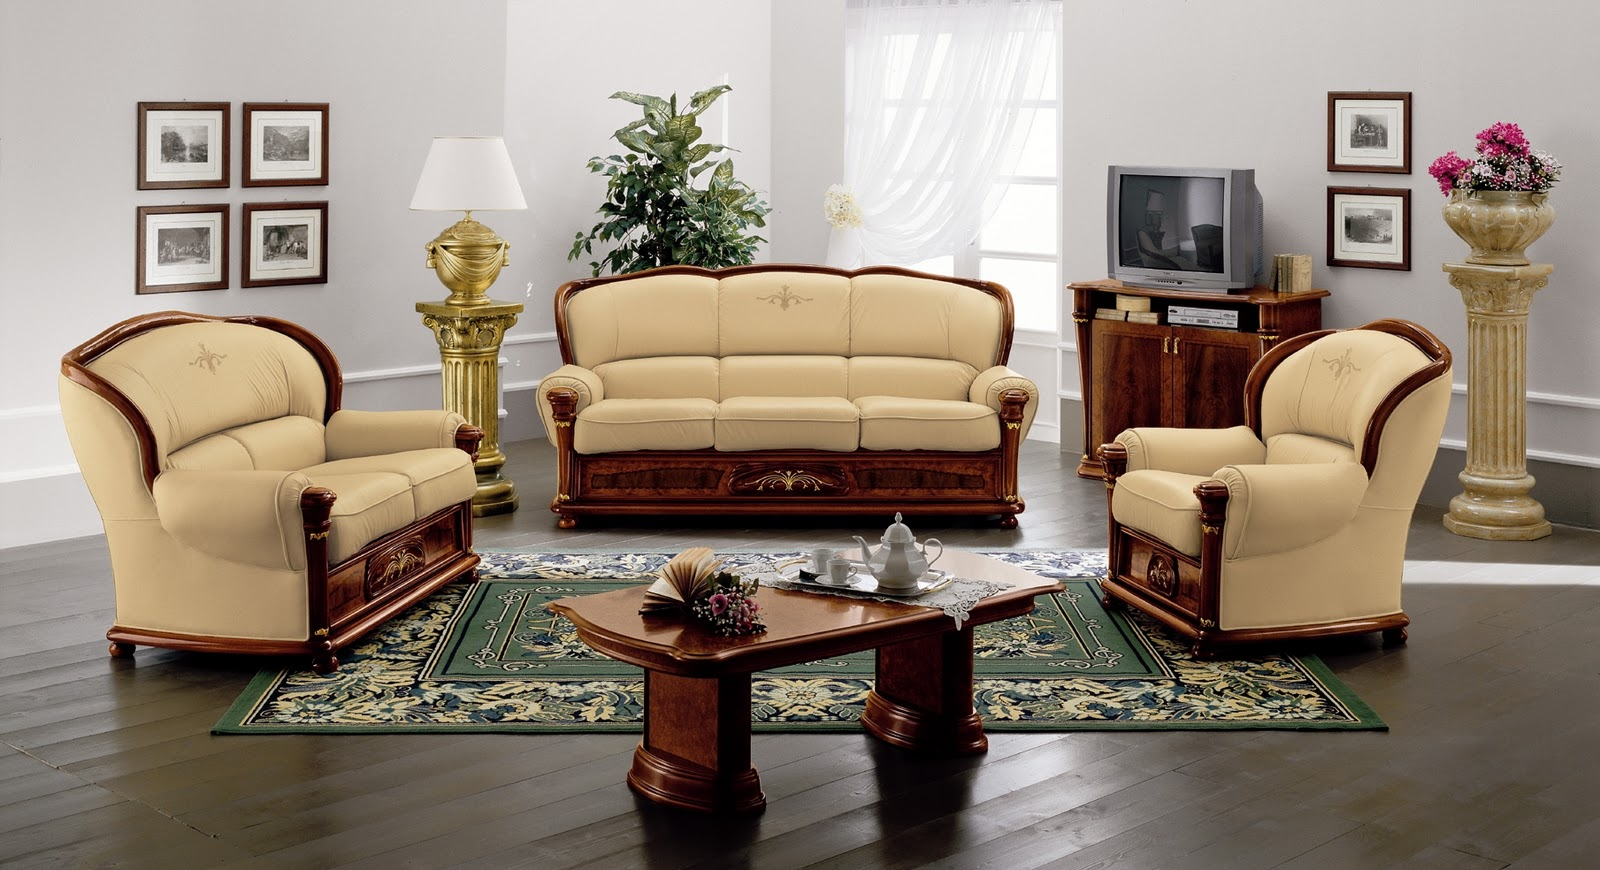 magazine for asian women asian culture sofa set